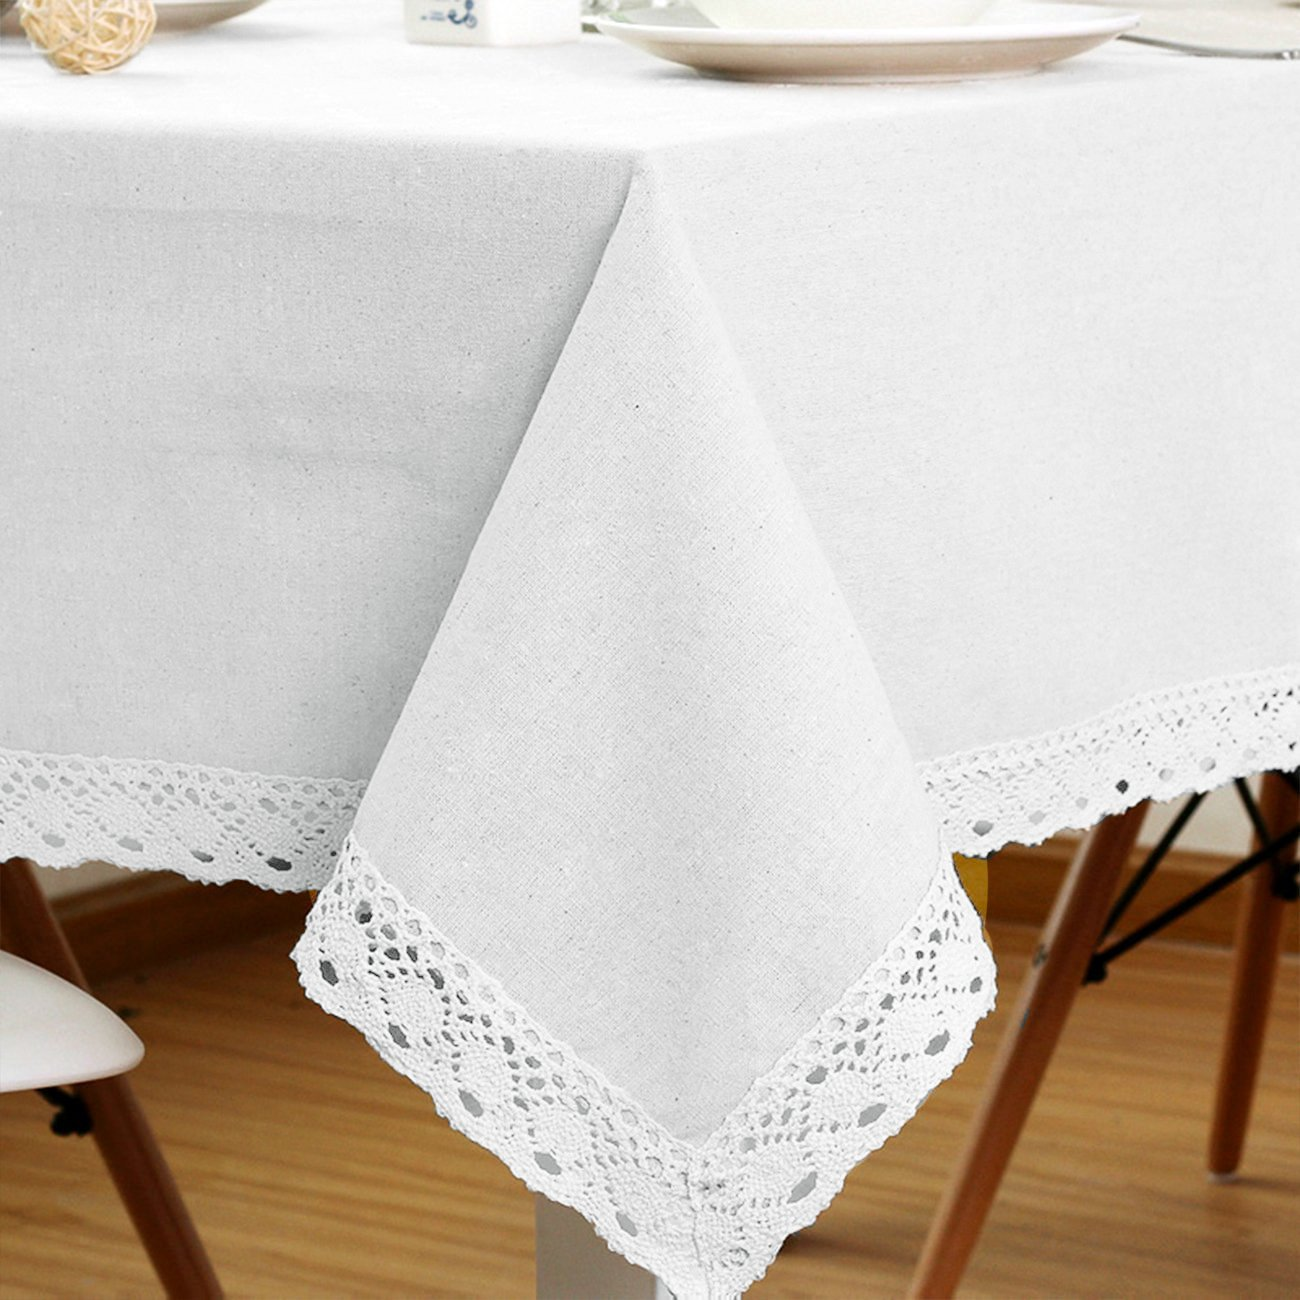 LINENLUX Cotton Linen Tablecloth Macrame Rectangle Table Covers for Dinner Parties Holidays Coffee-RE 55 x 63 in